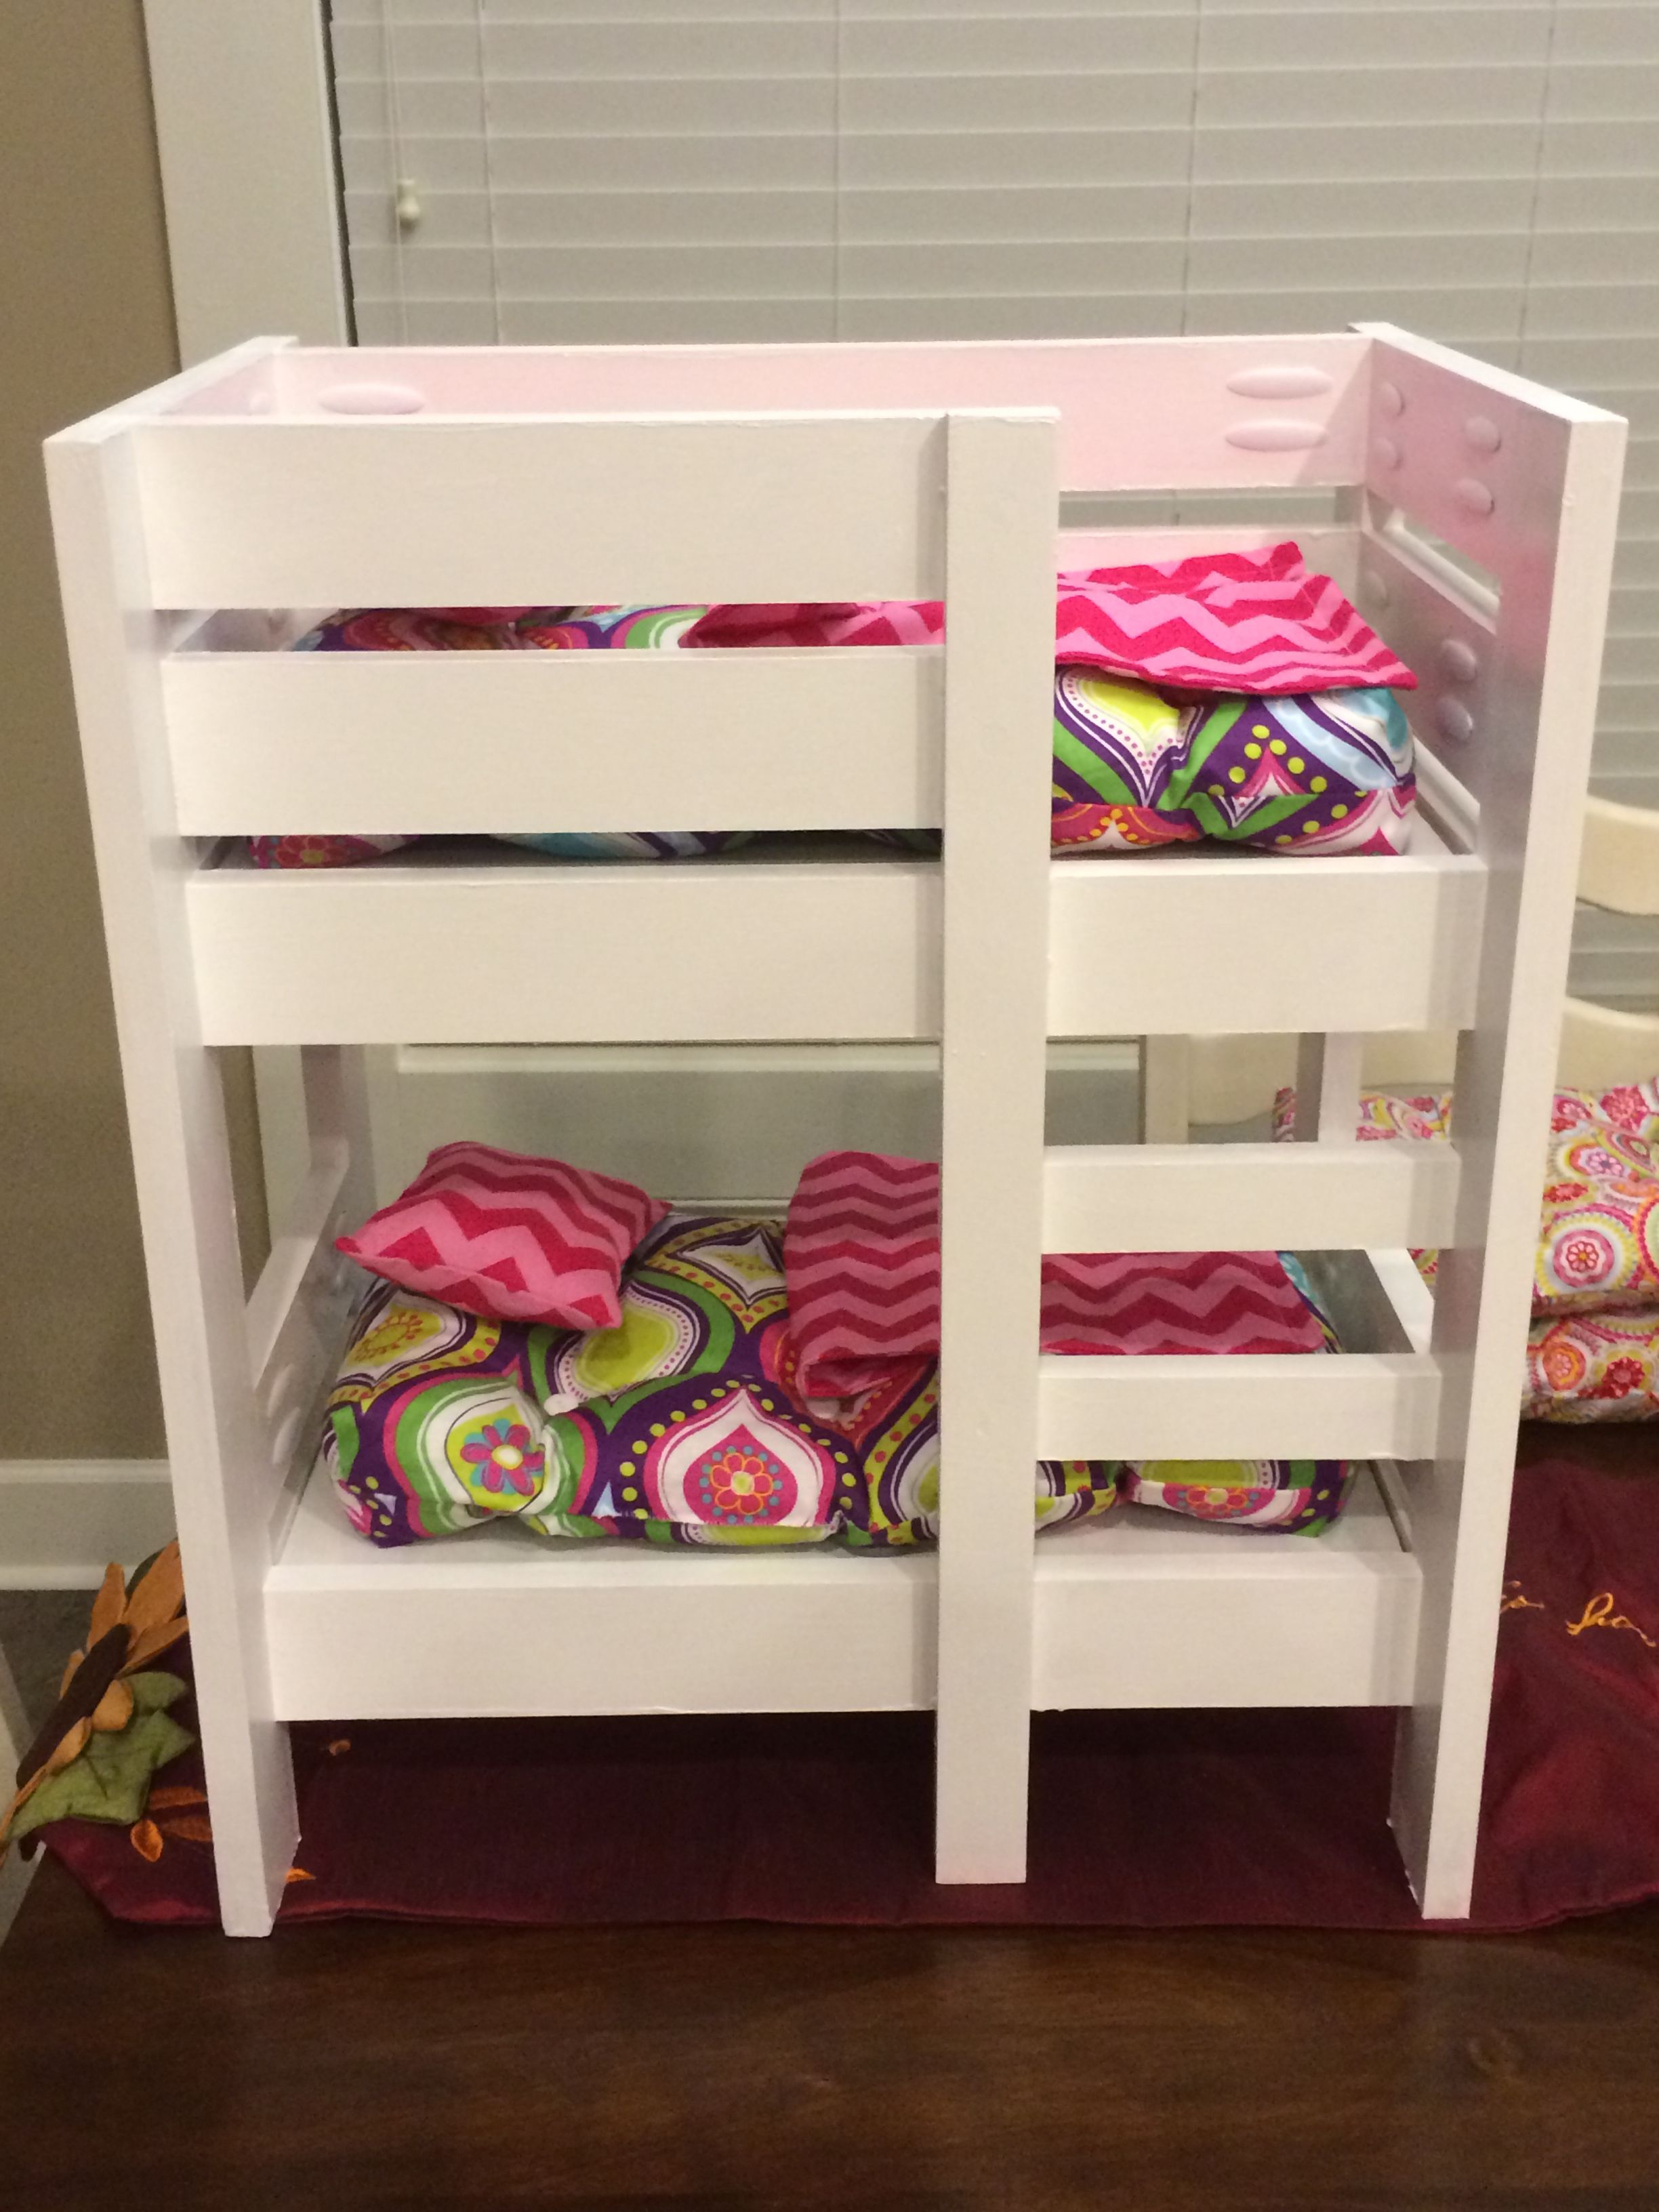 american girl doll bunk beds do it yourself home projects from ana white amercian girl doll. Black Bedroom Furniture Sets. Home Design Ideas